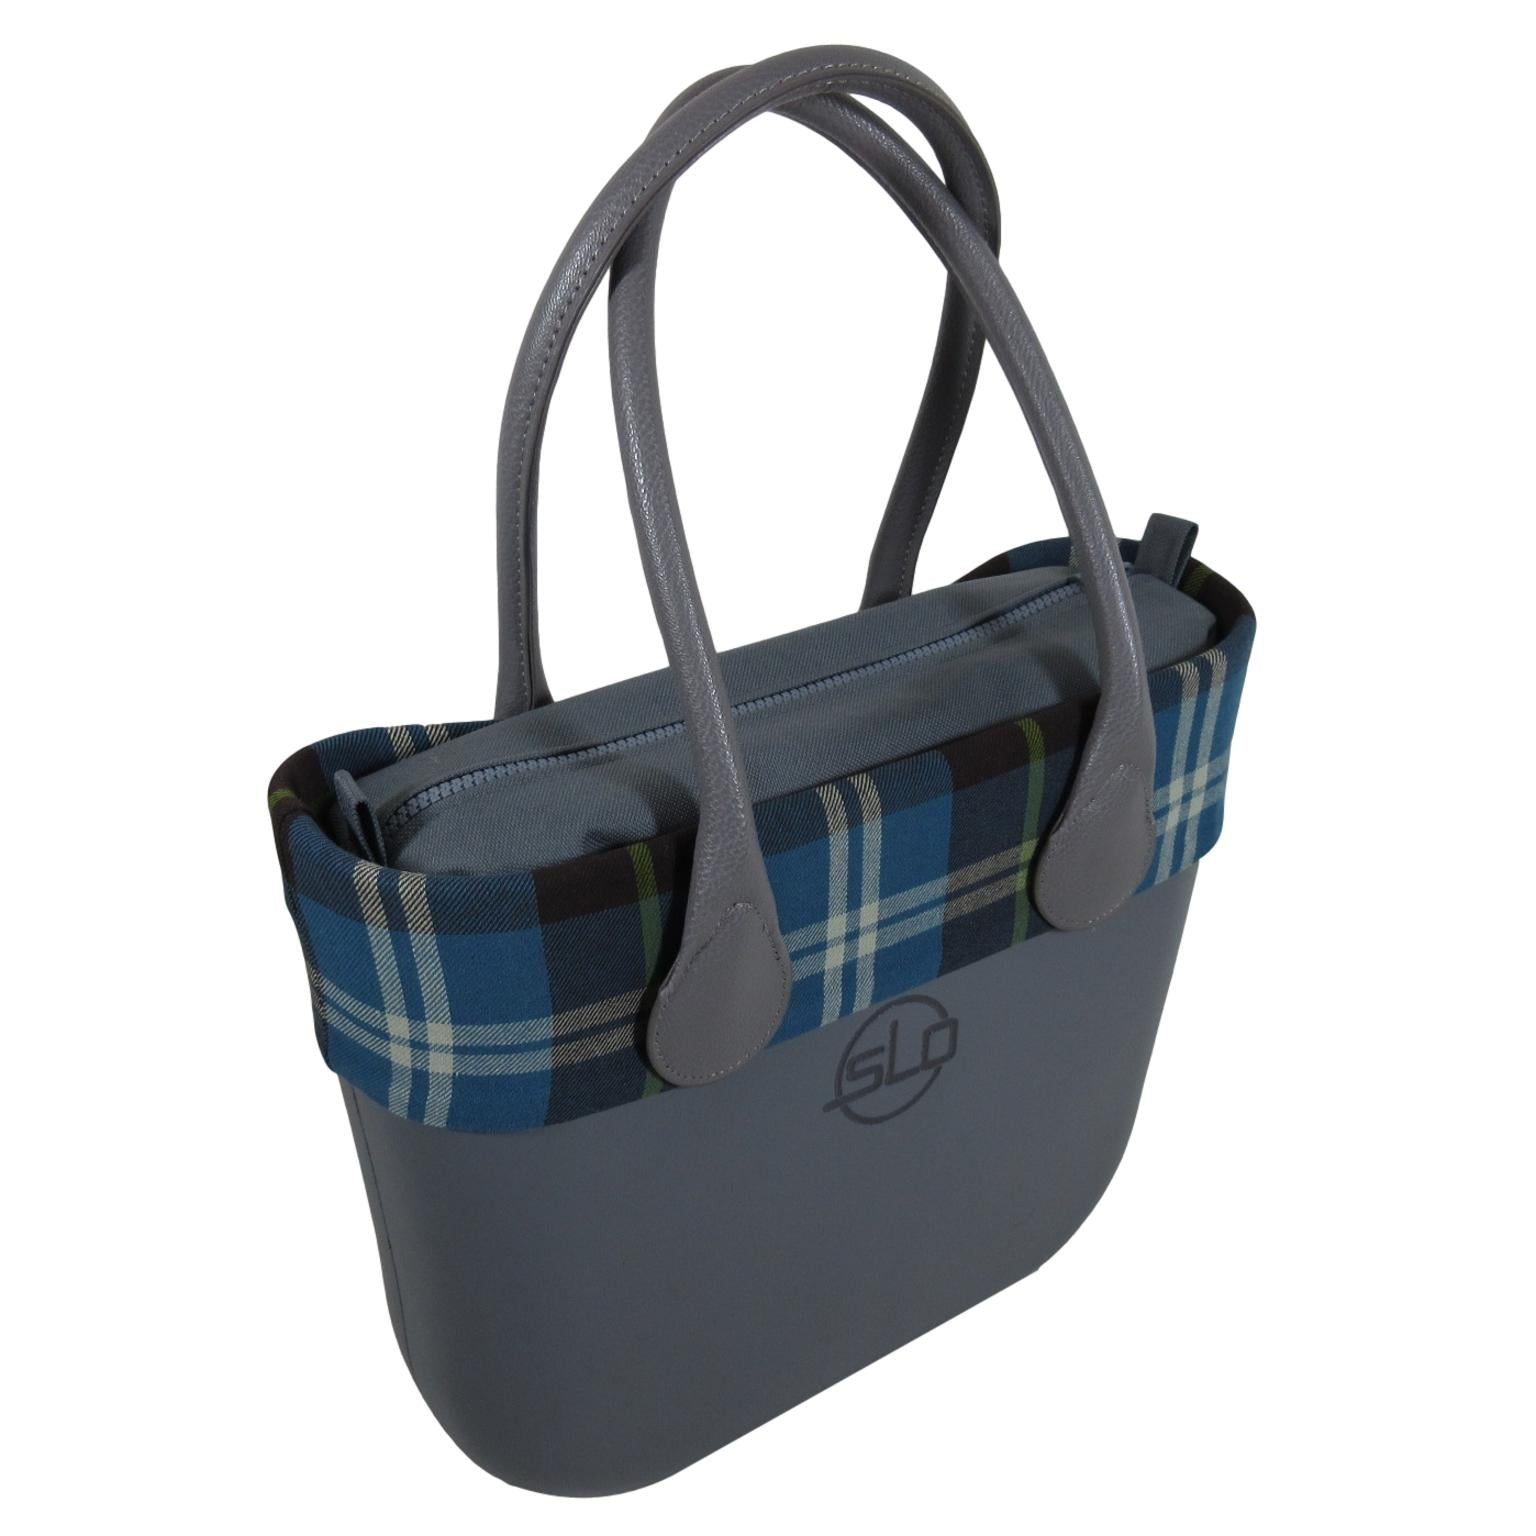 SLOW SLO Fashion Petite Handbag Bonnie Tartan designer travel or every day tote